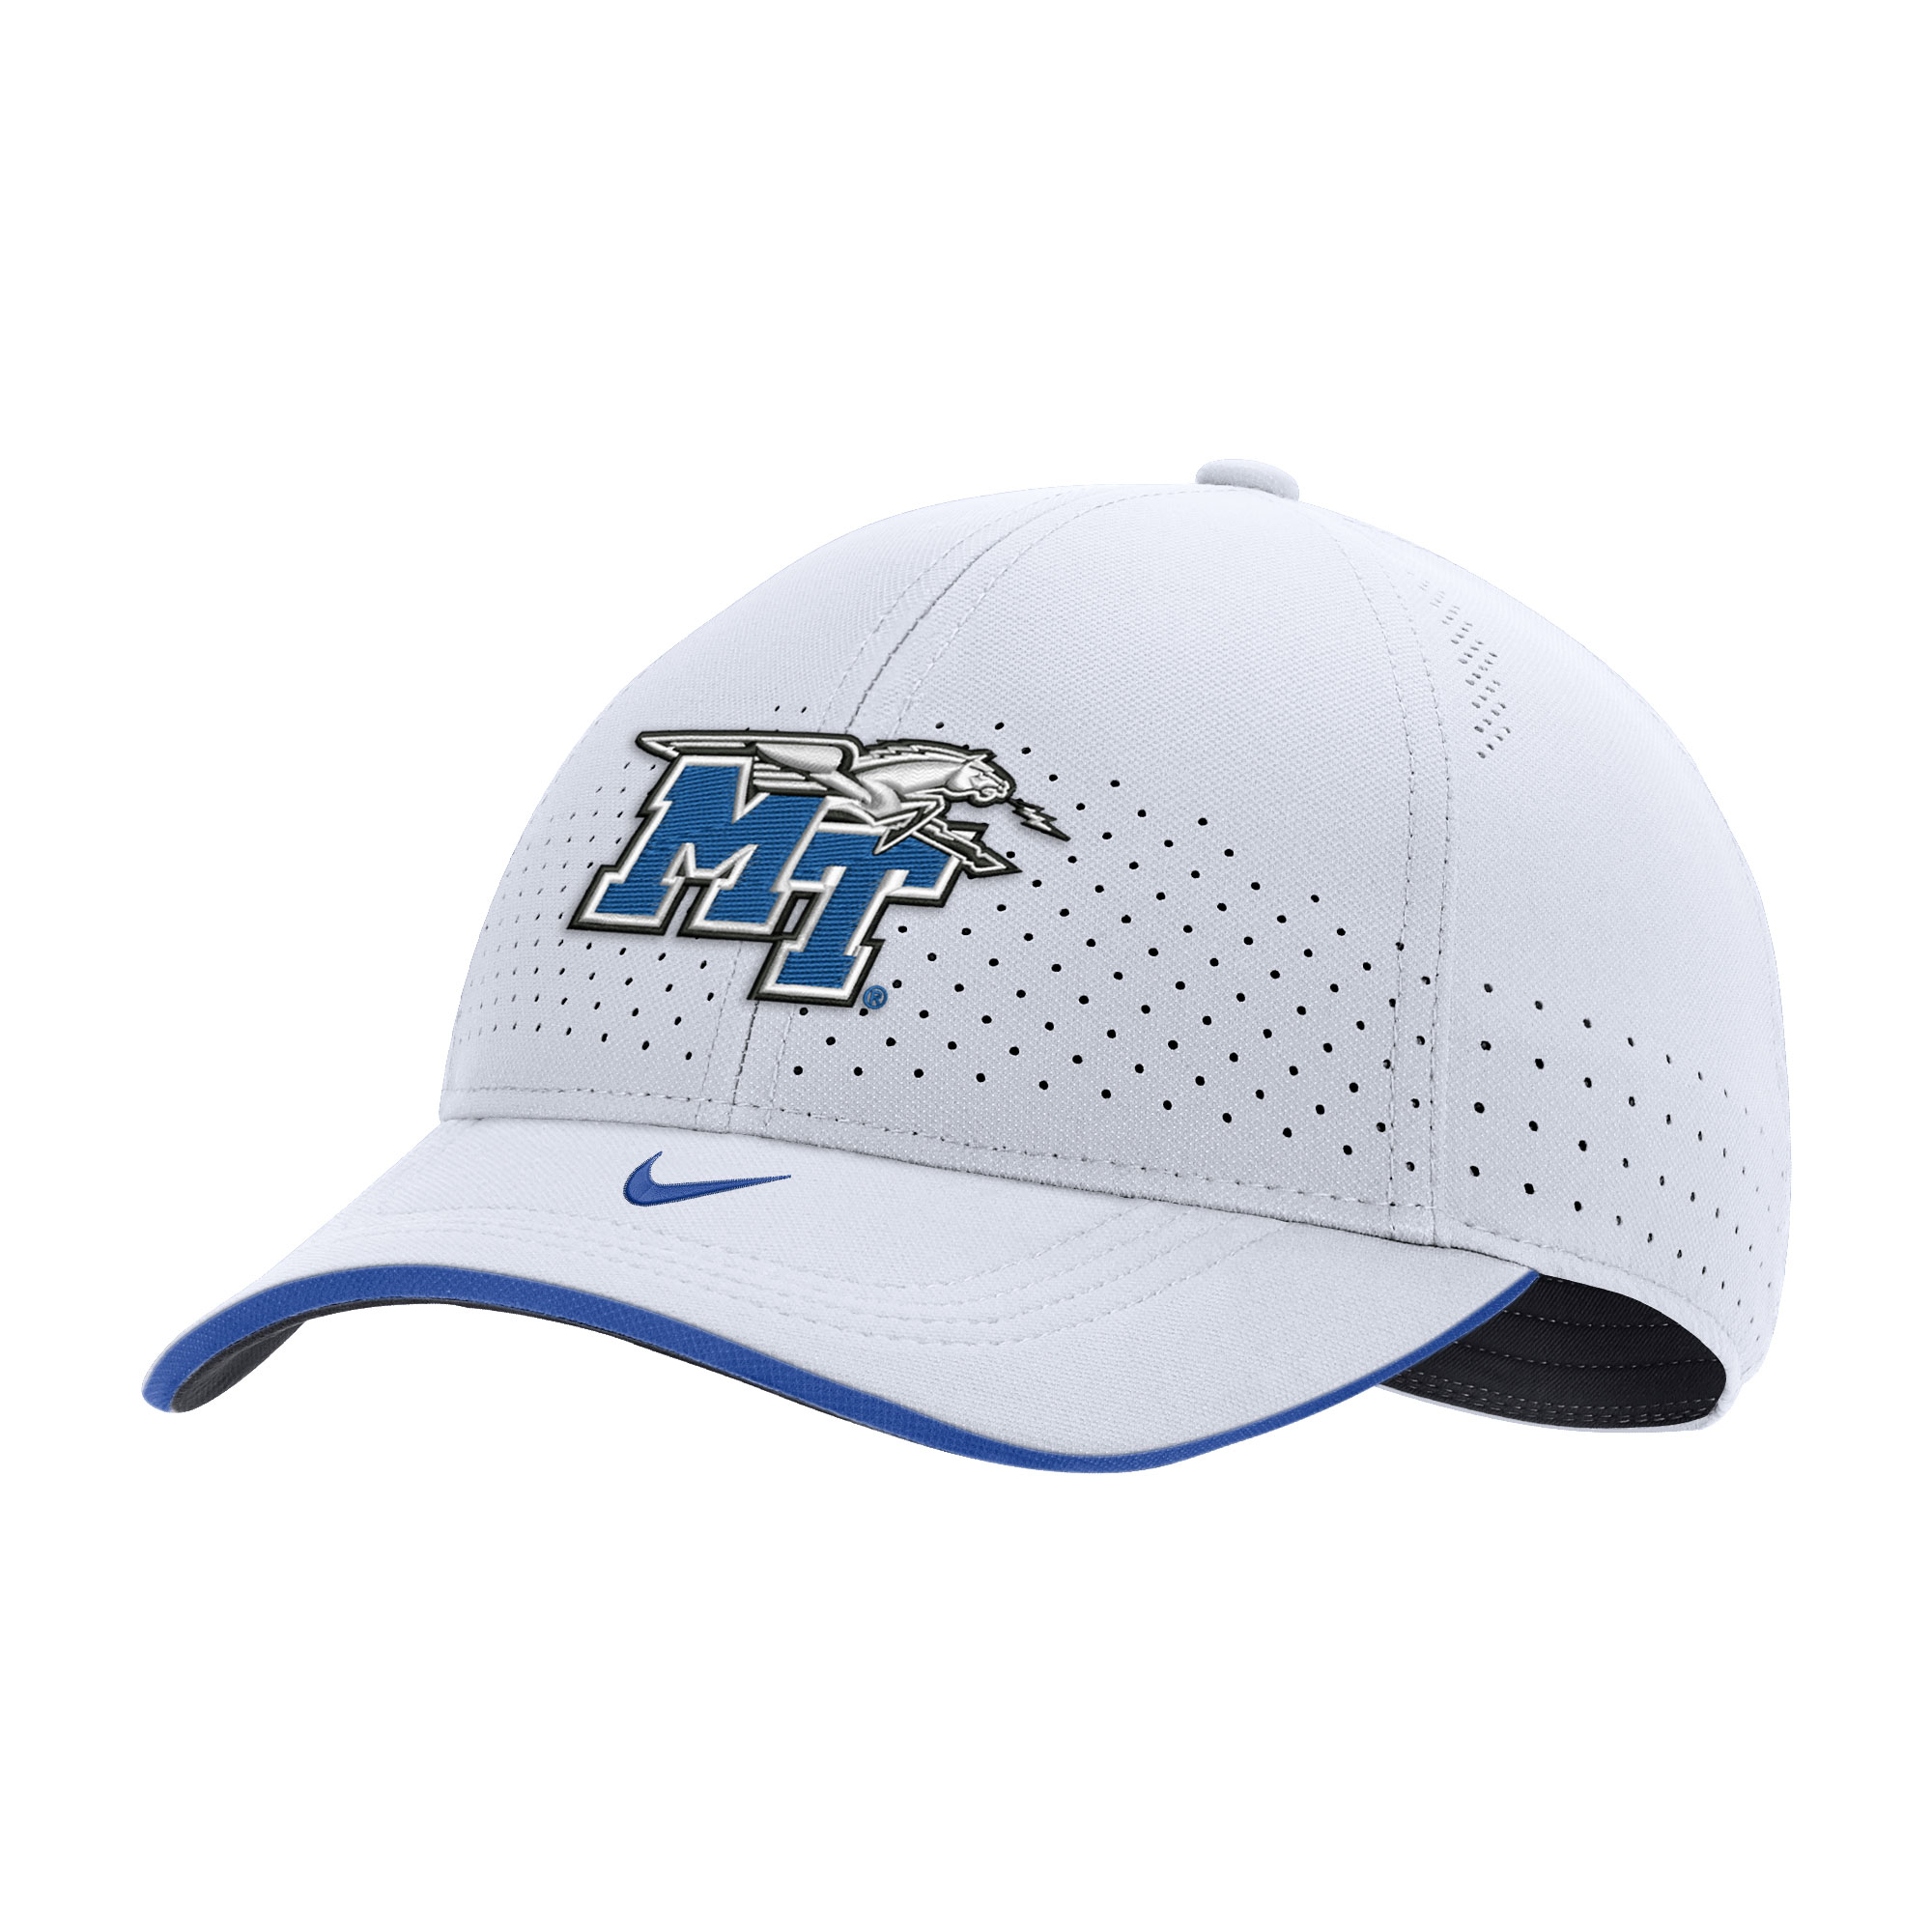 MT Logo w/ Lightning Nike® Sideline L91 Adjustable Hat